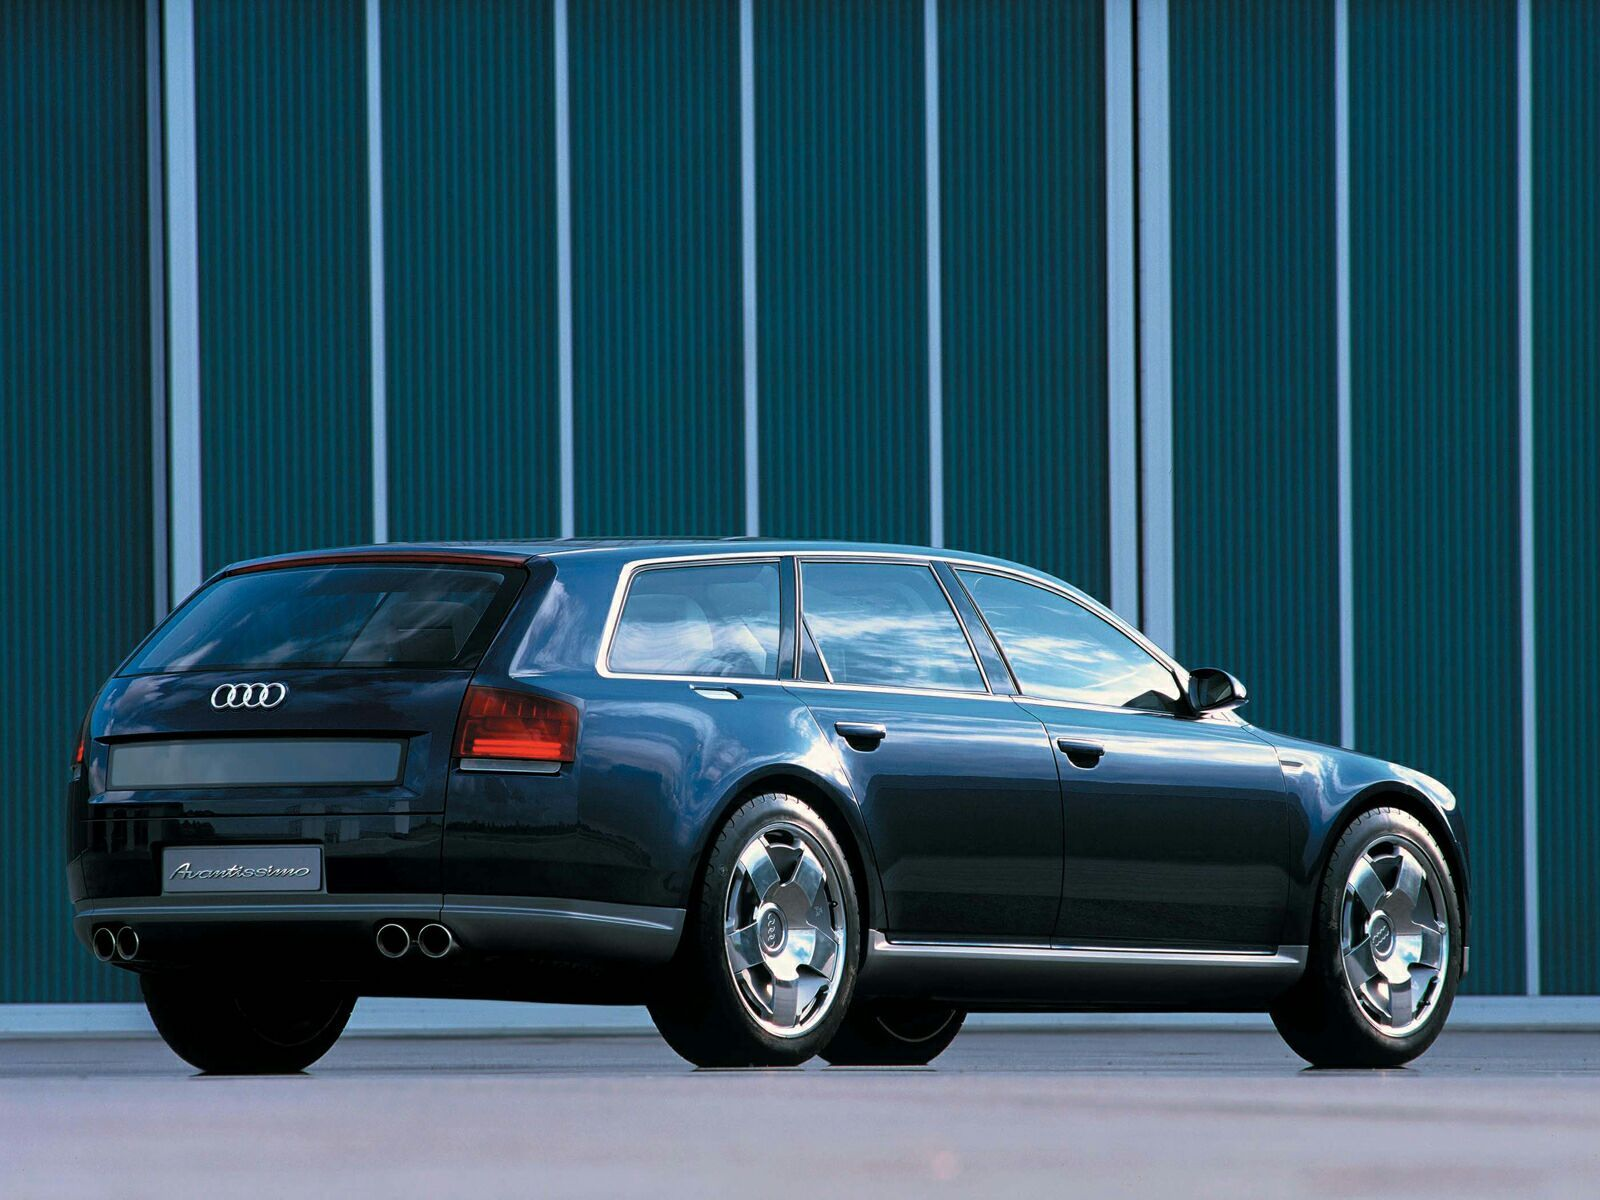 Toyota Station Wagon >> 2001 Audi Avantissimo | Top Speed